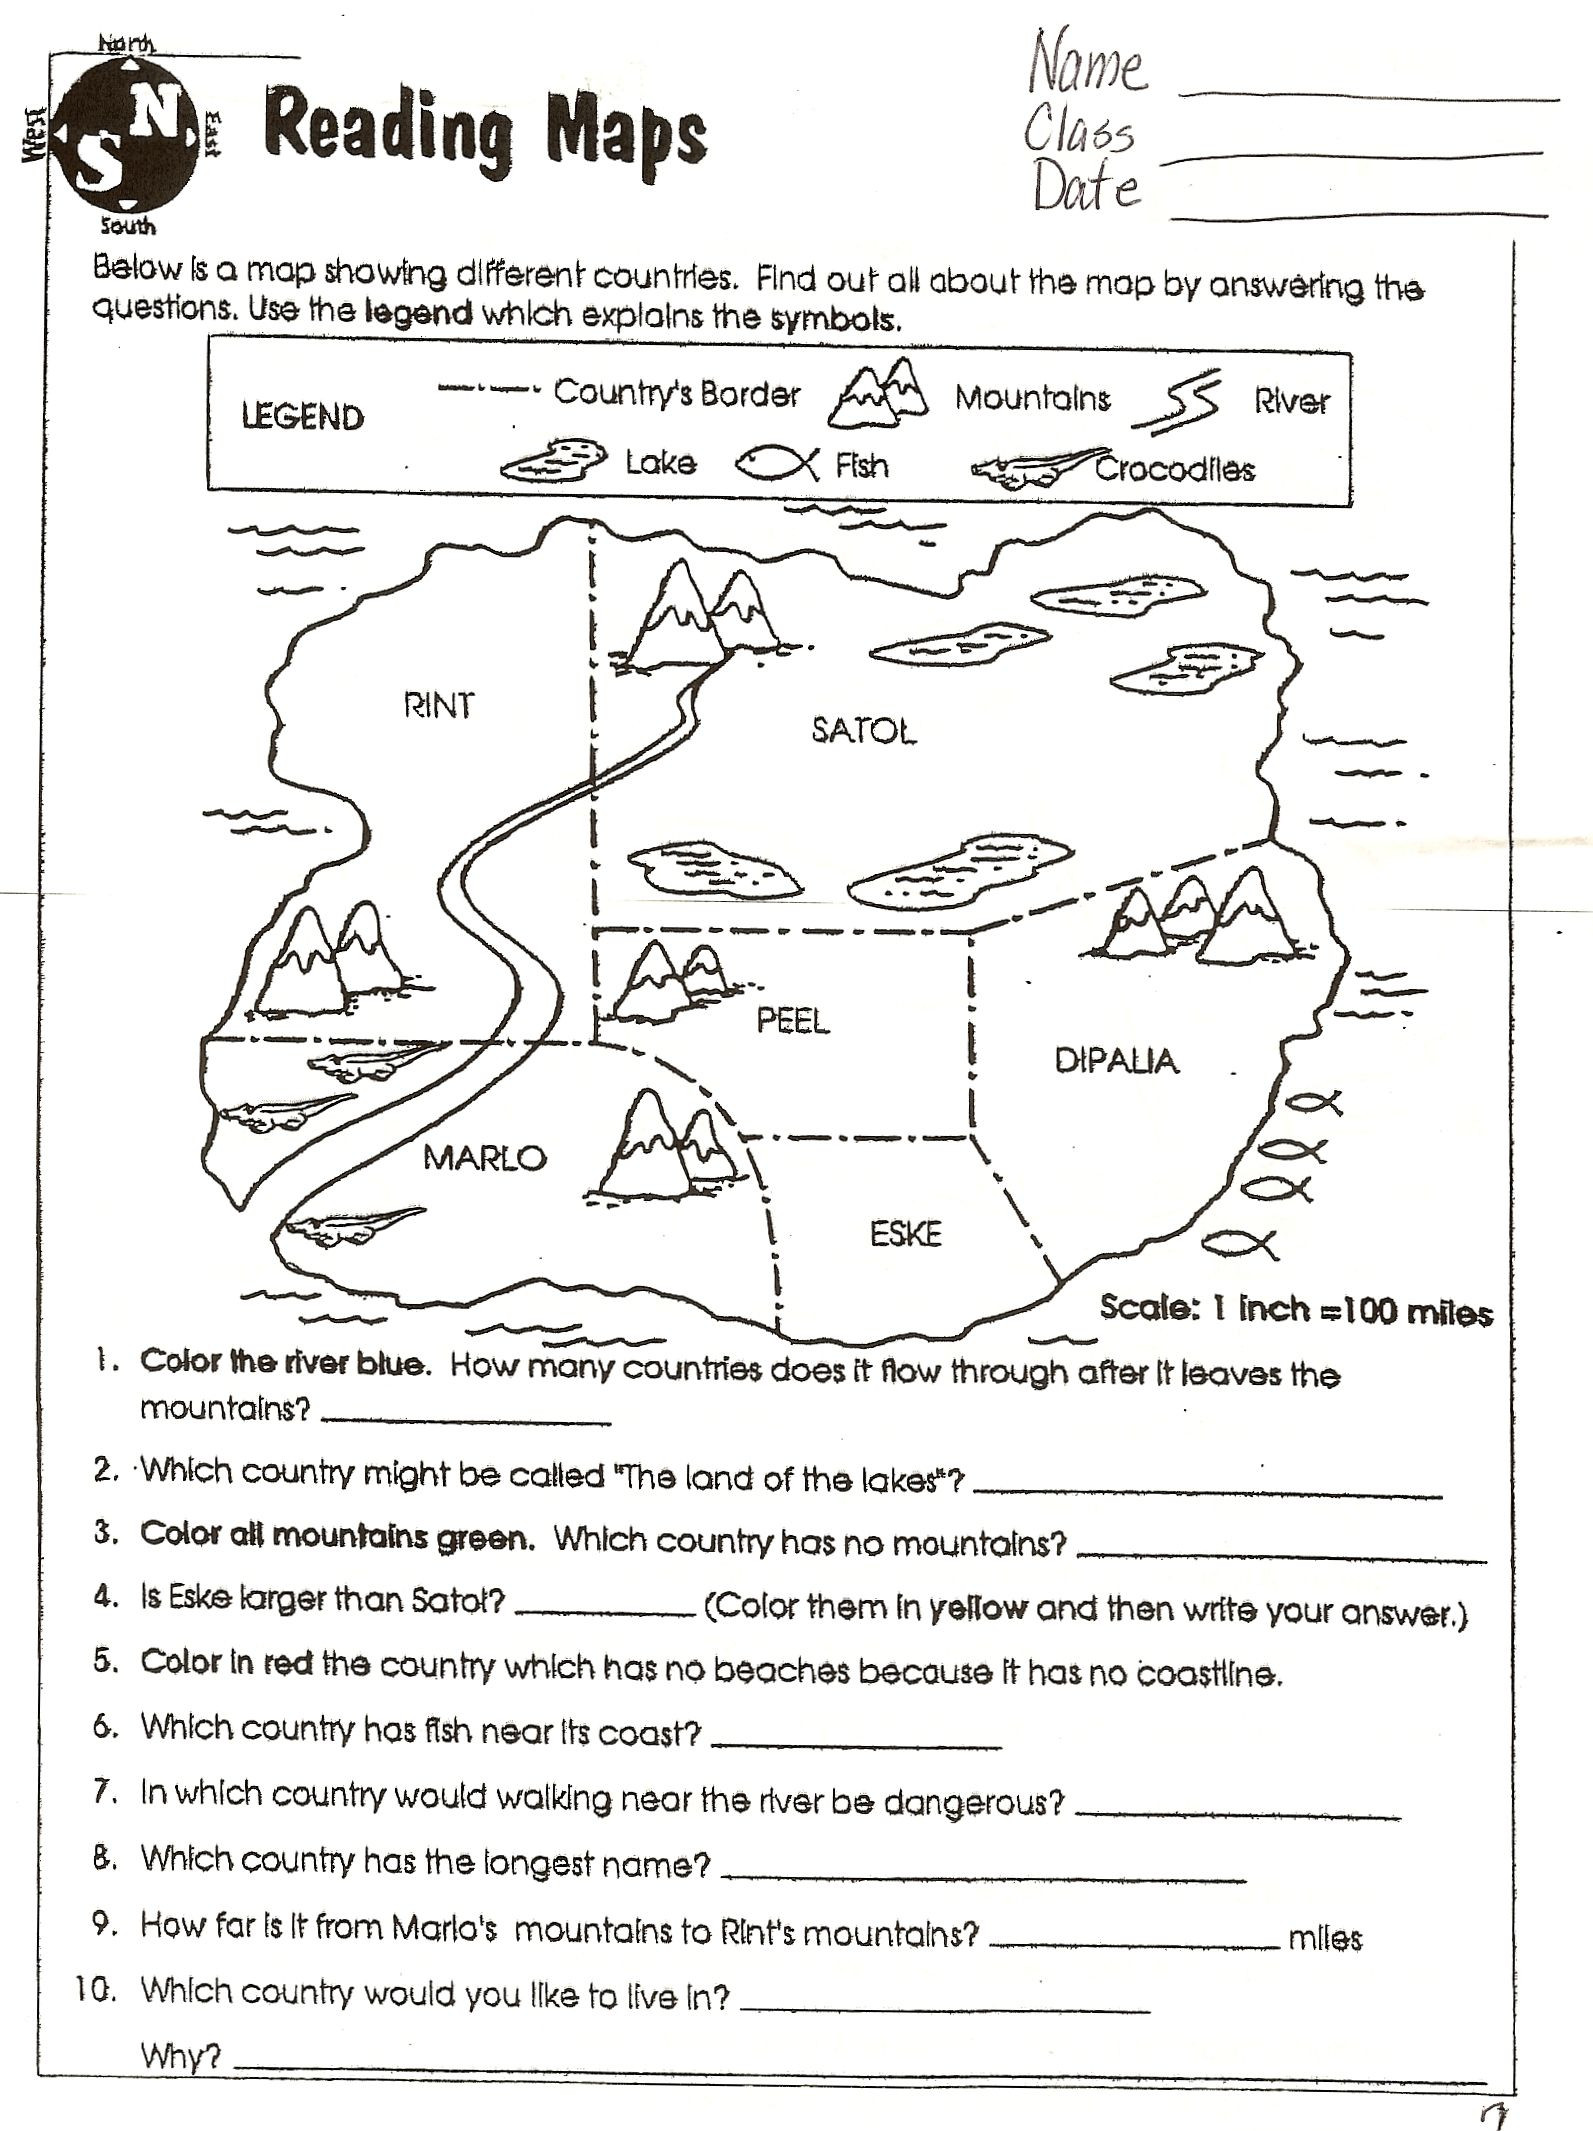 4th Grade History Worksheets 4th Grade social Stu S Worksheets Free Printable